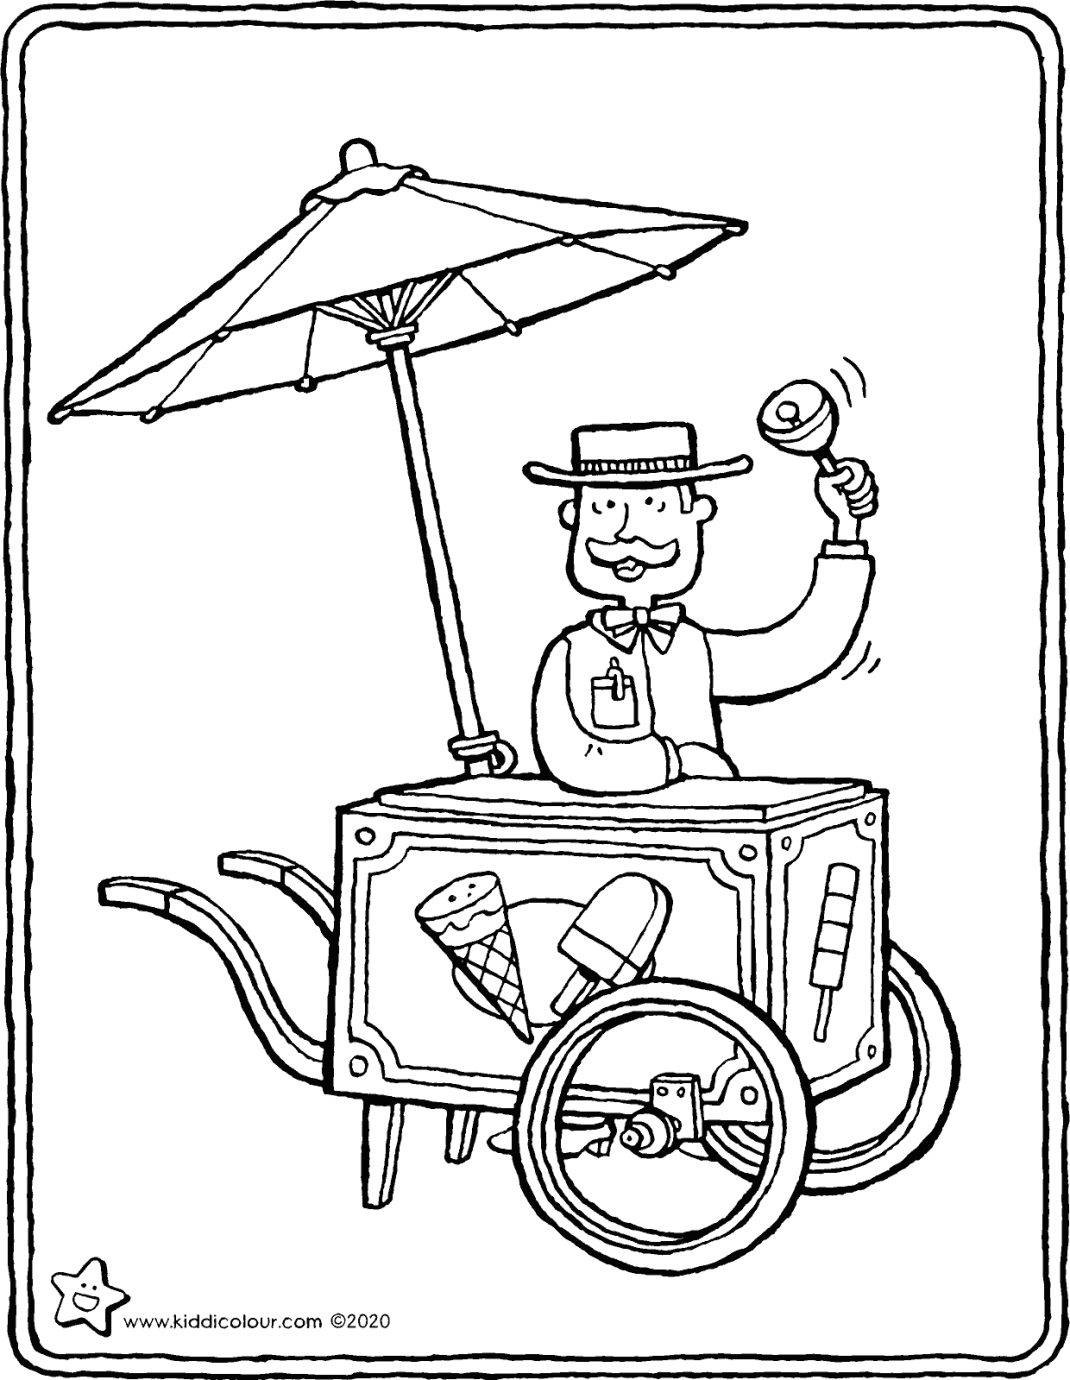 ice cream seller colouring page drawing picture 01V